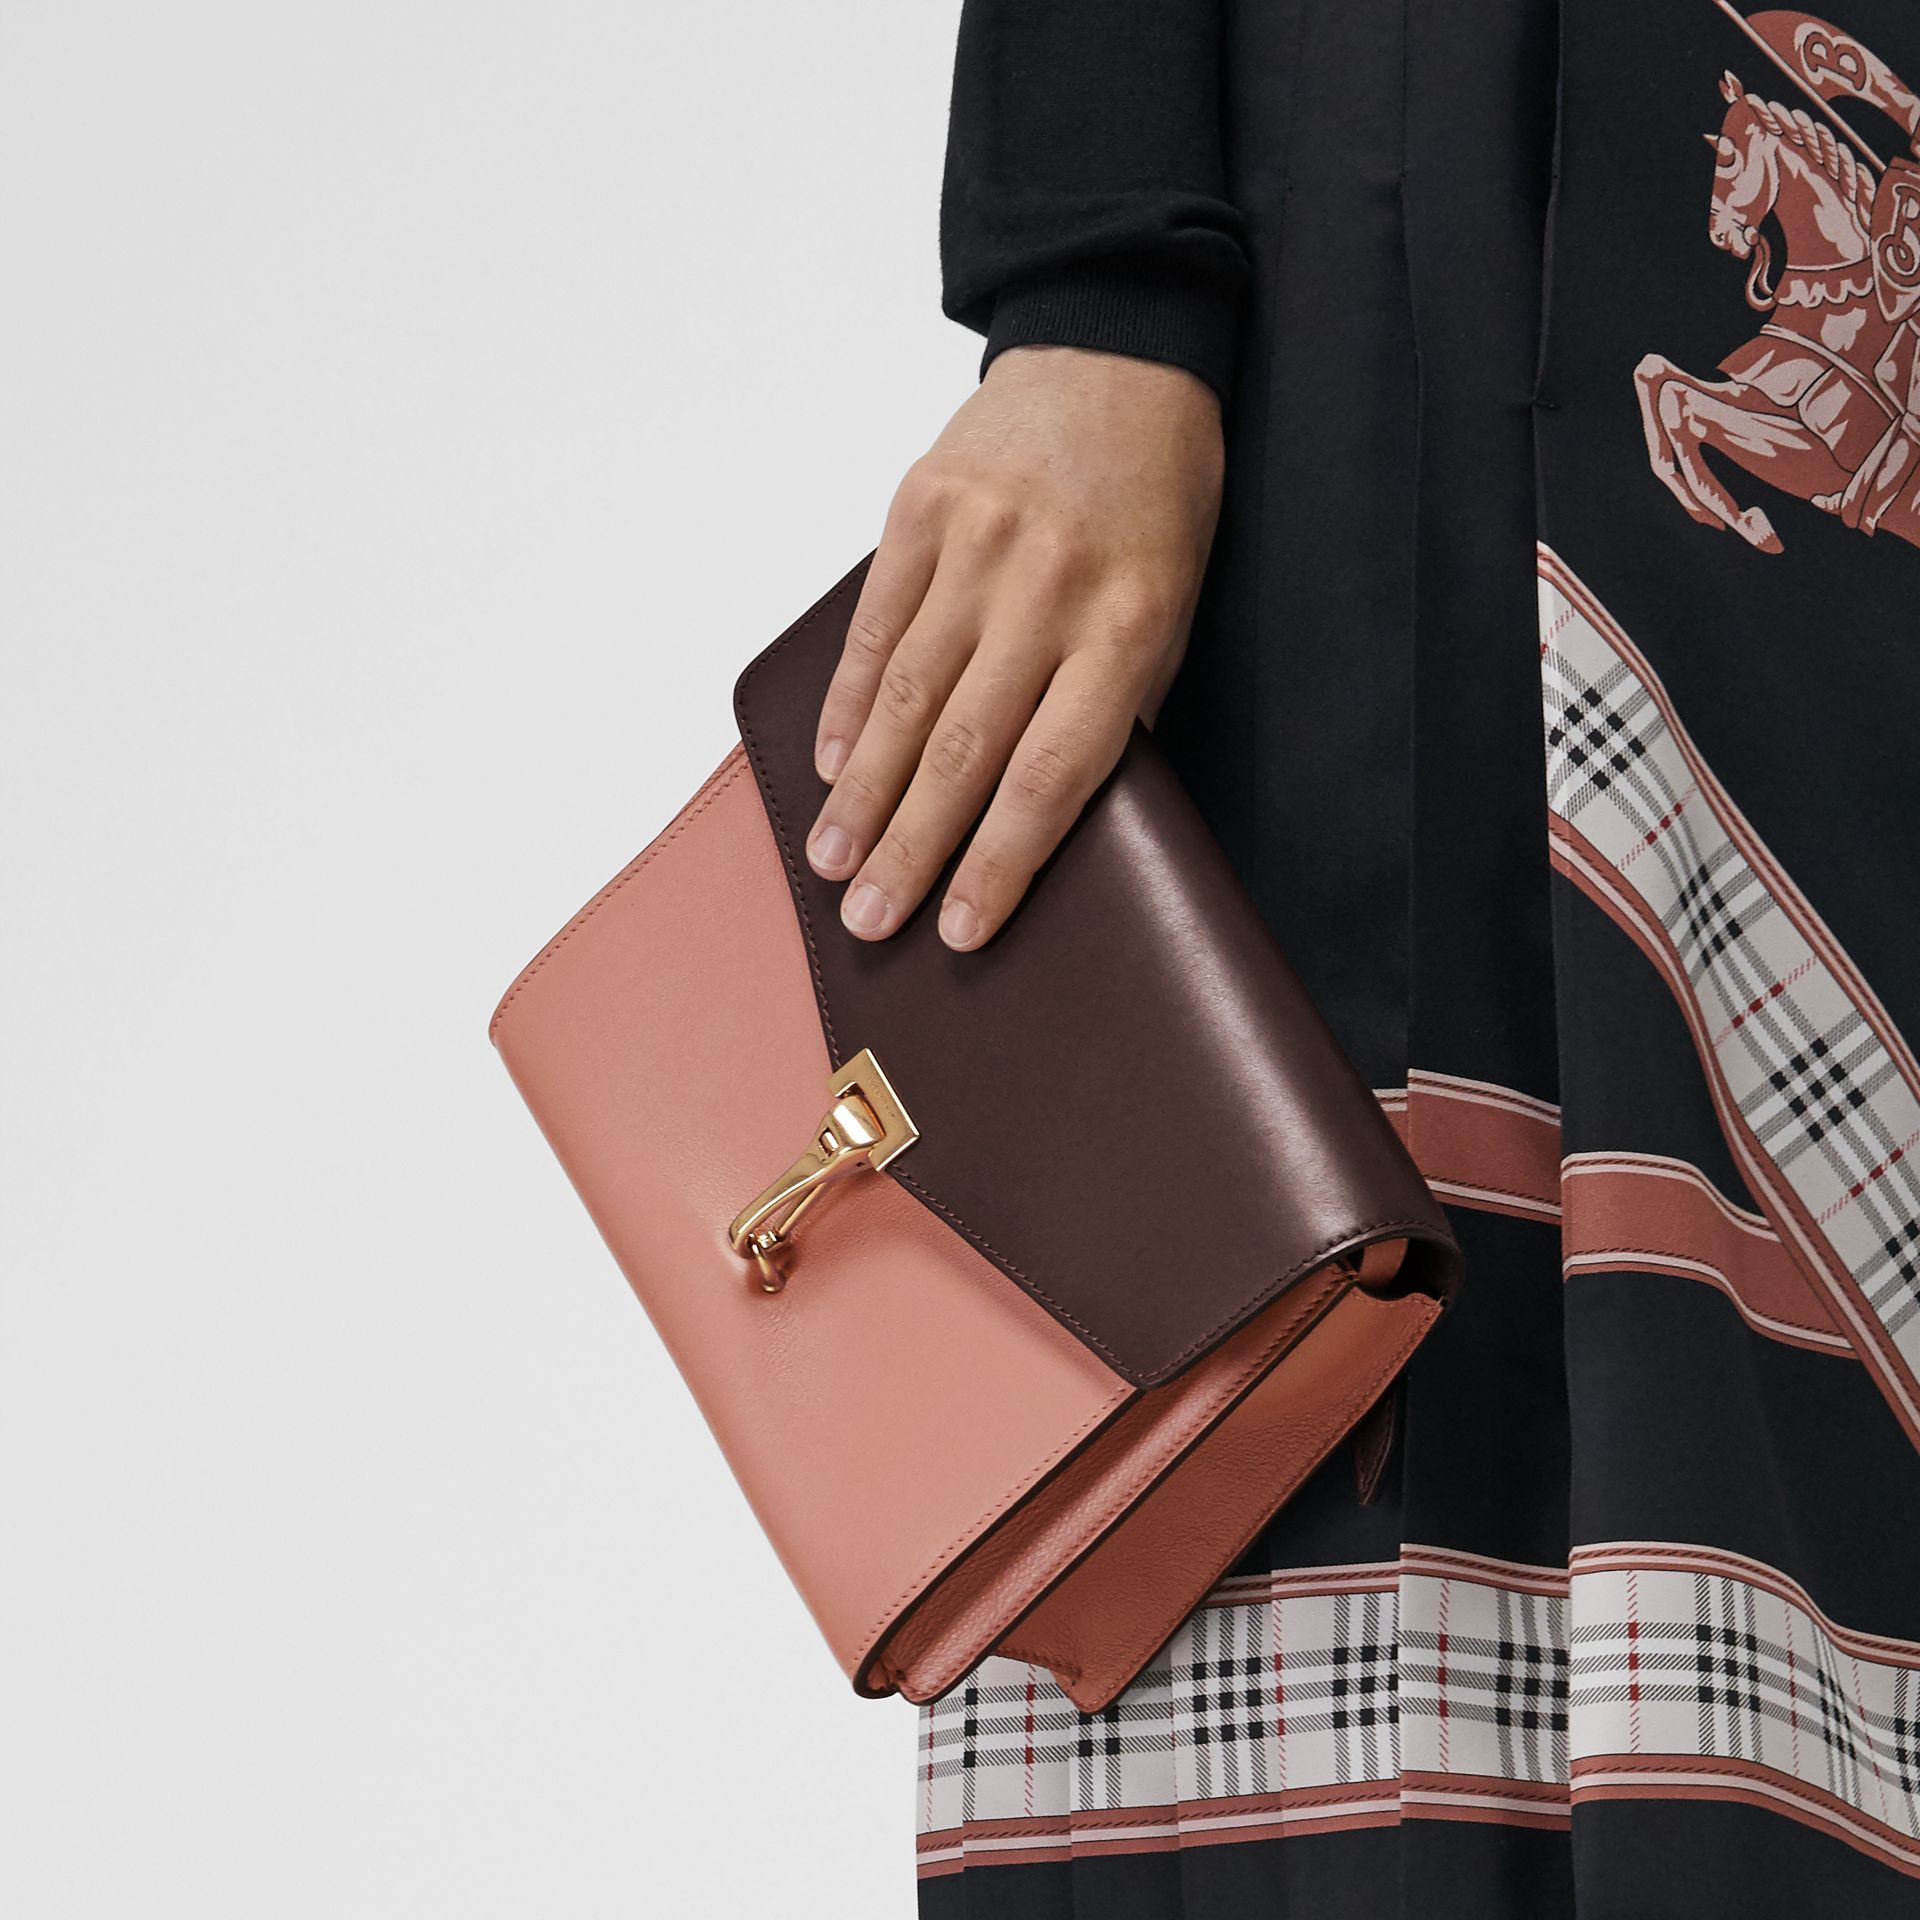 Two-tone Leather Crossbody Bag in Dusty Rose/deep Claret - Women | Burberry - gallery image 3